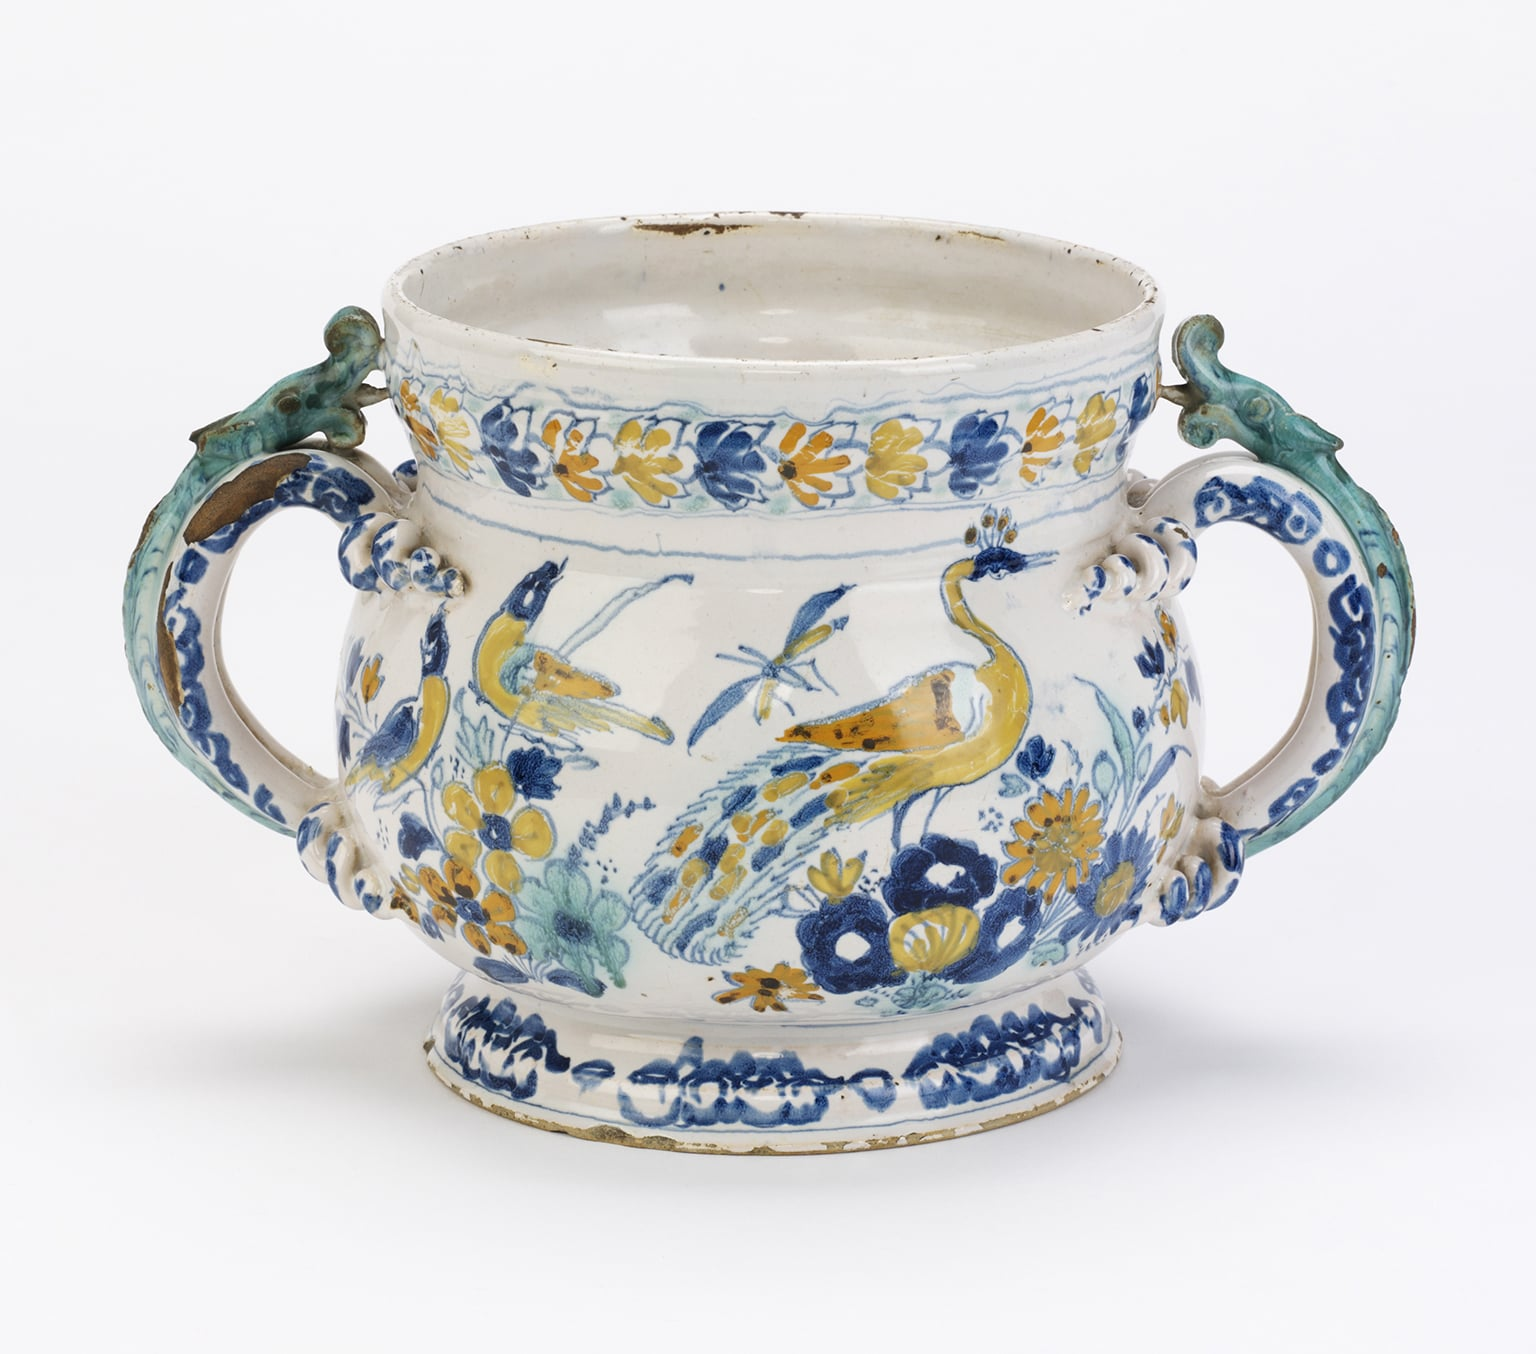 English delftware polychrome posset pot by Unknown, 1695 - © Geffrye, Museum of the Home